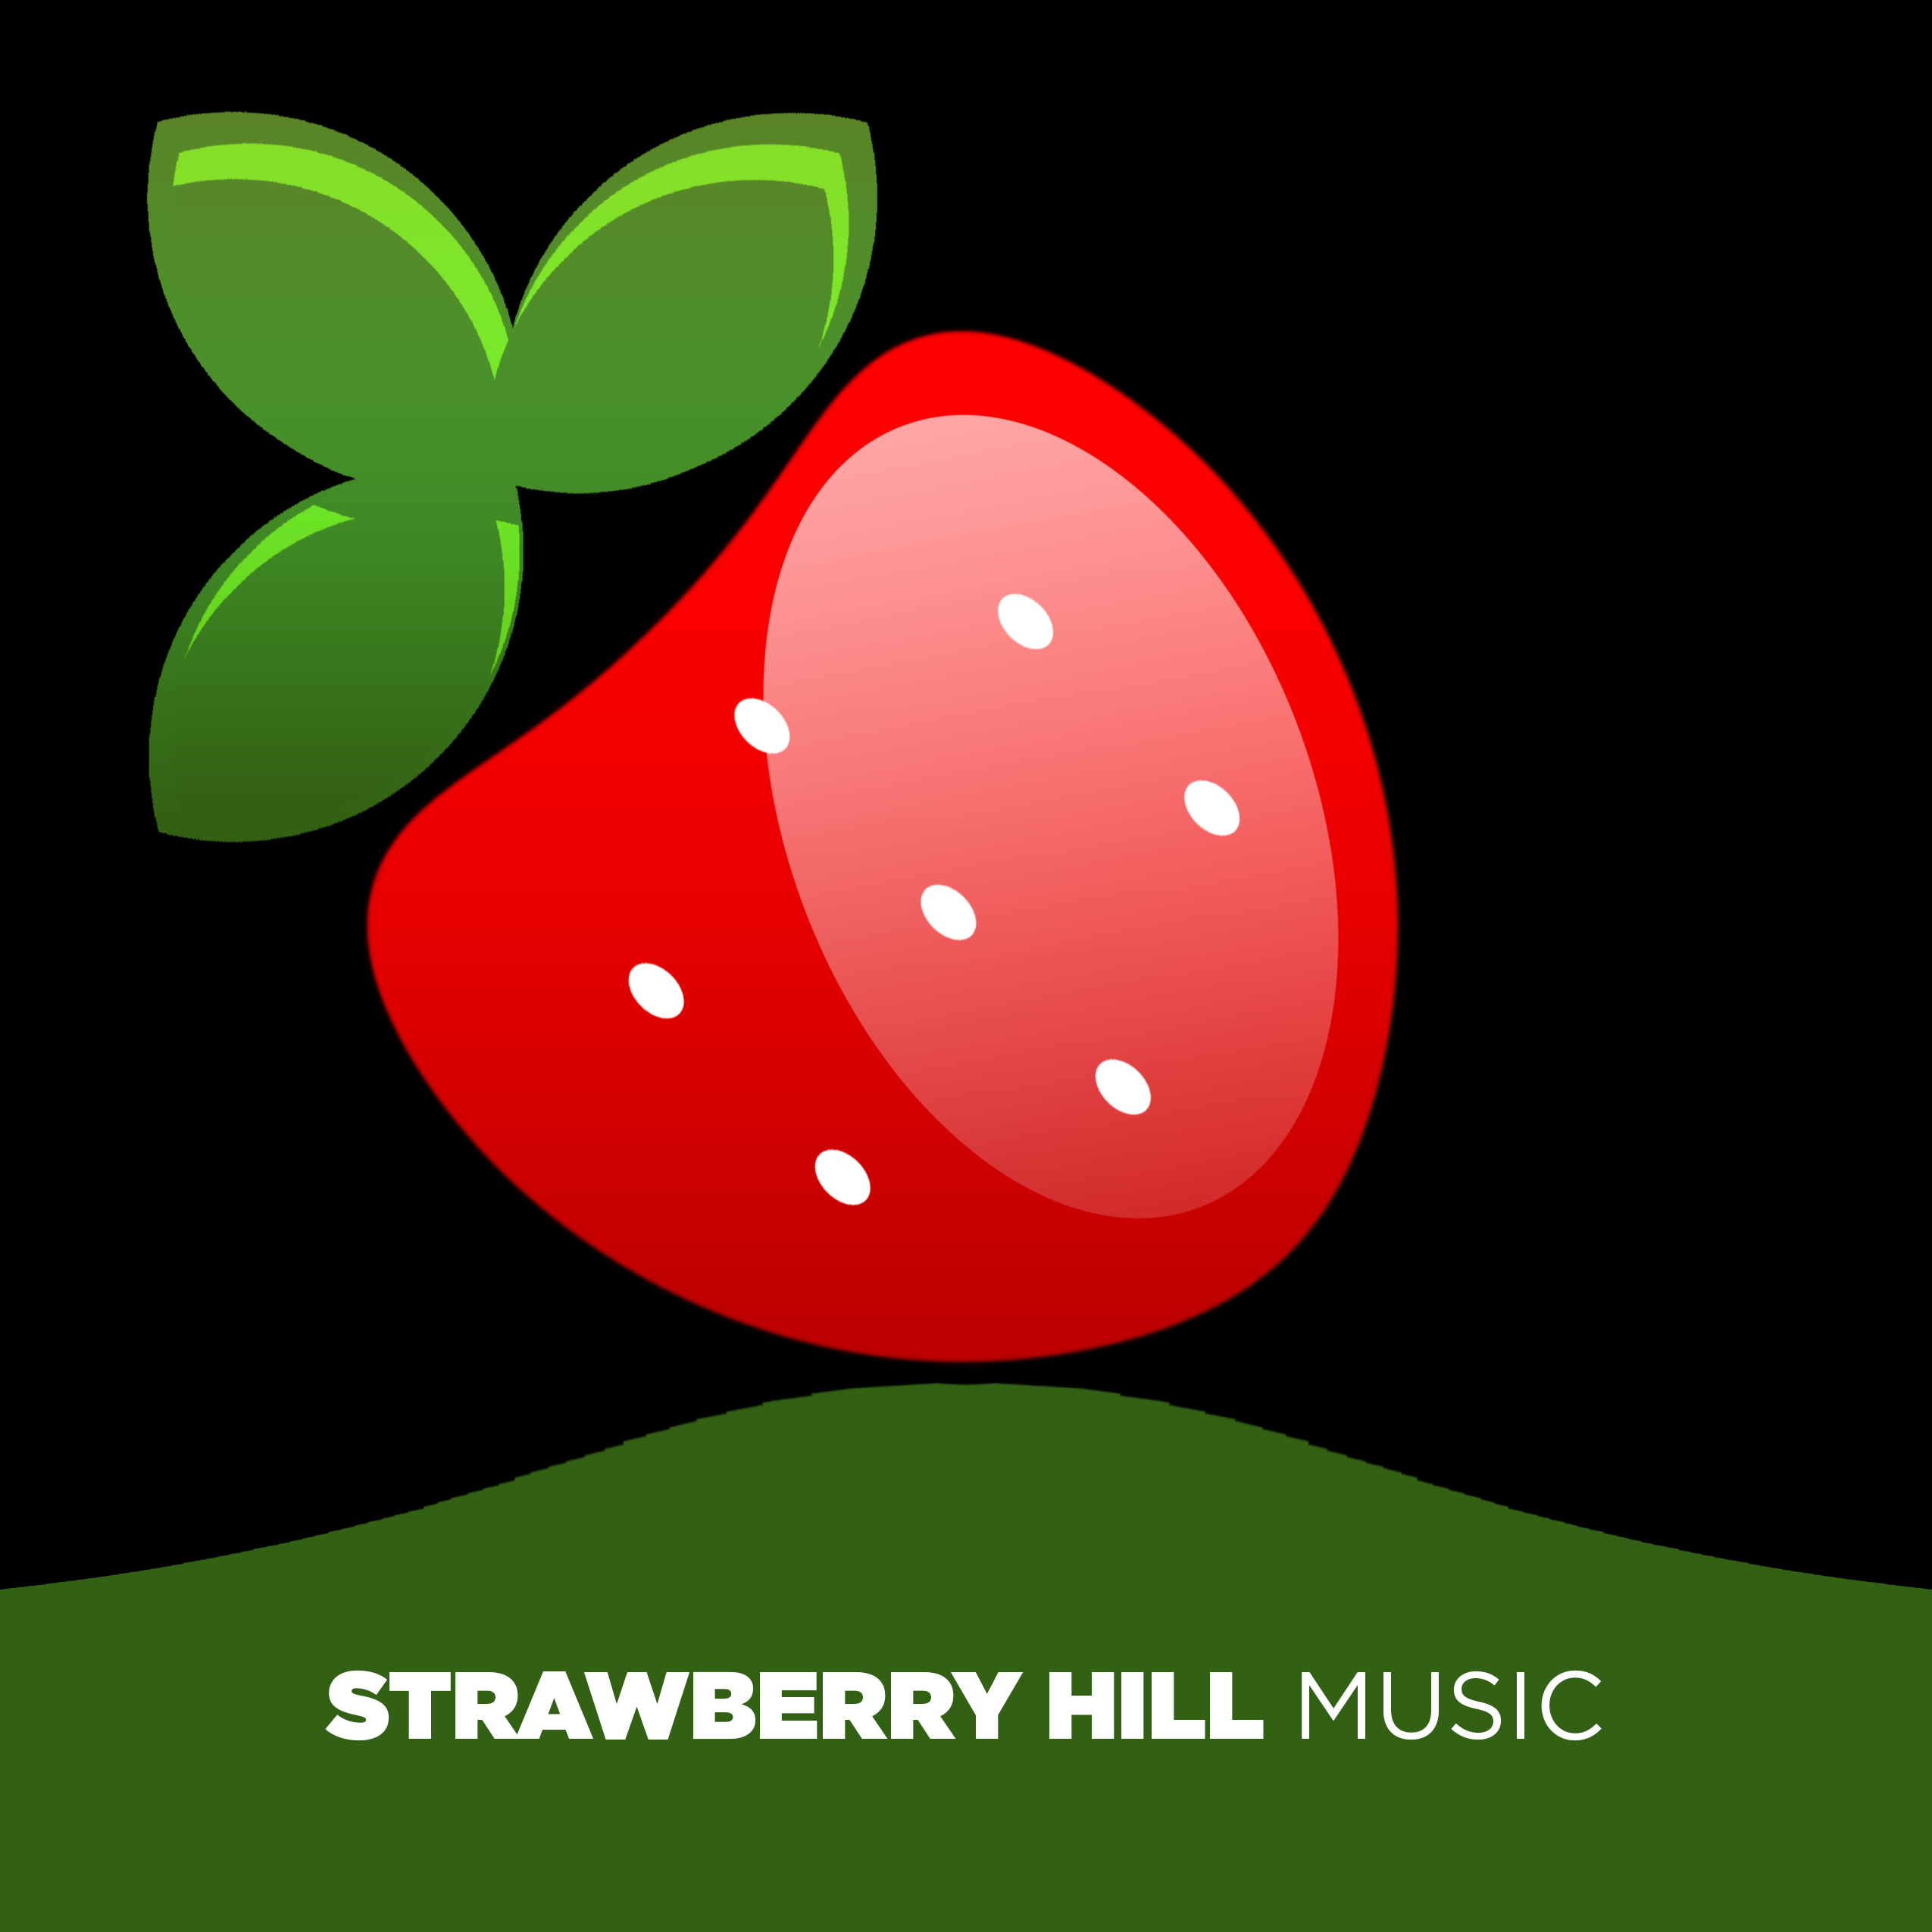 Strawberry Hill Music